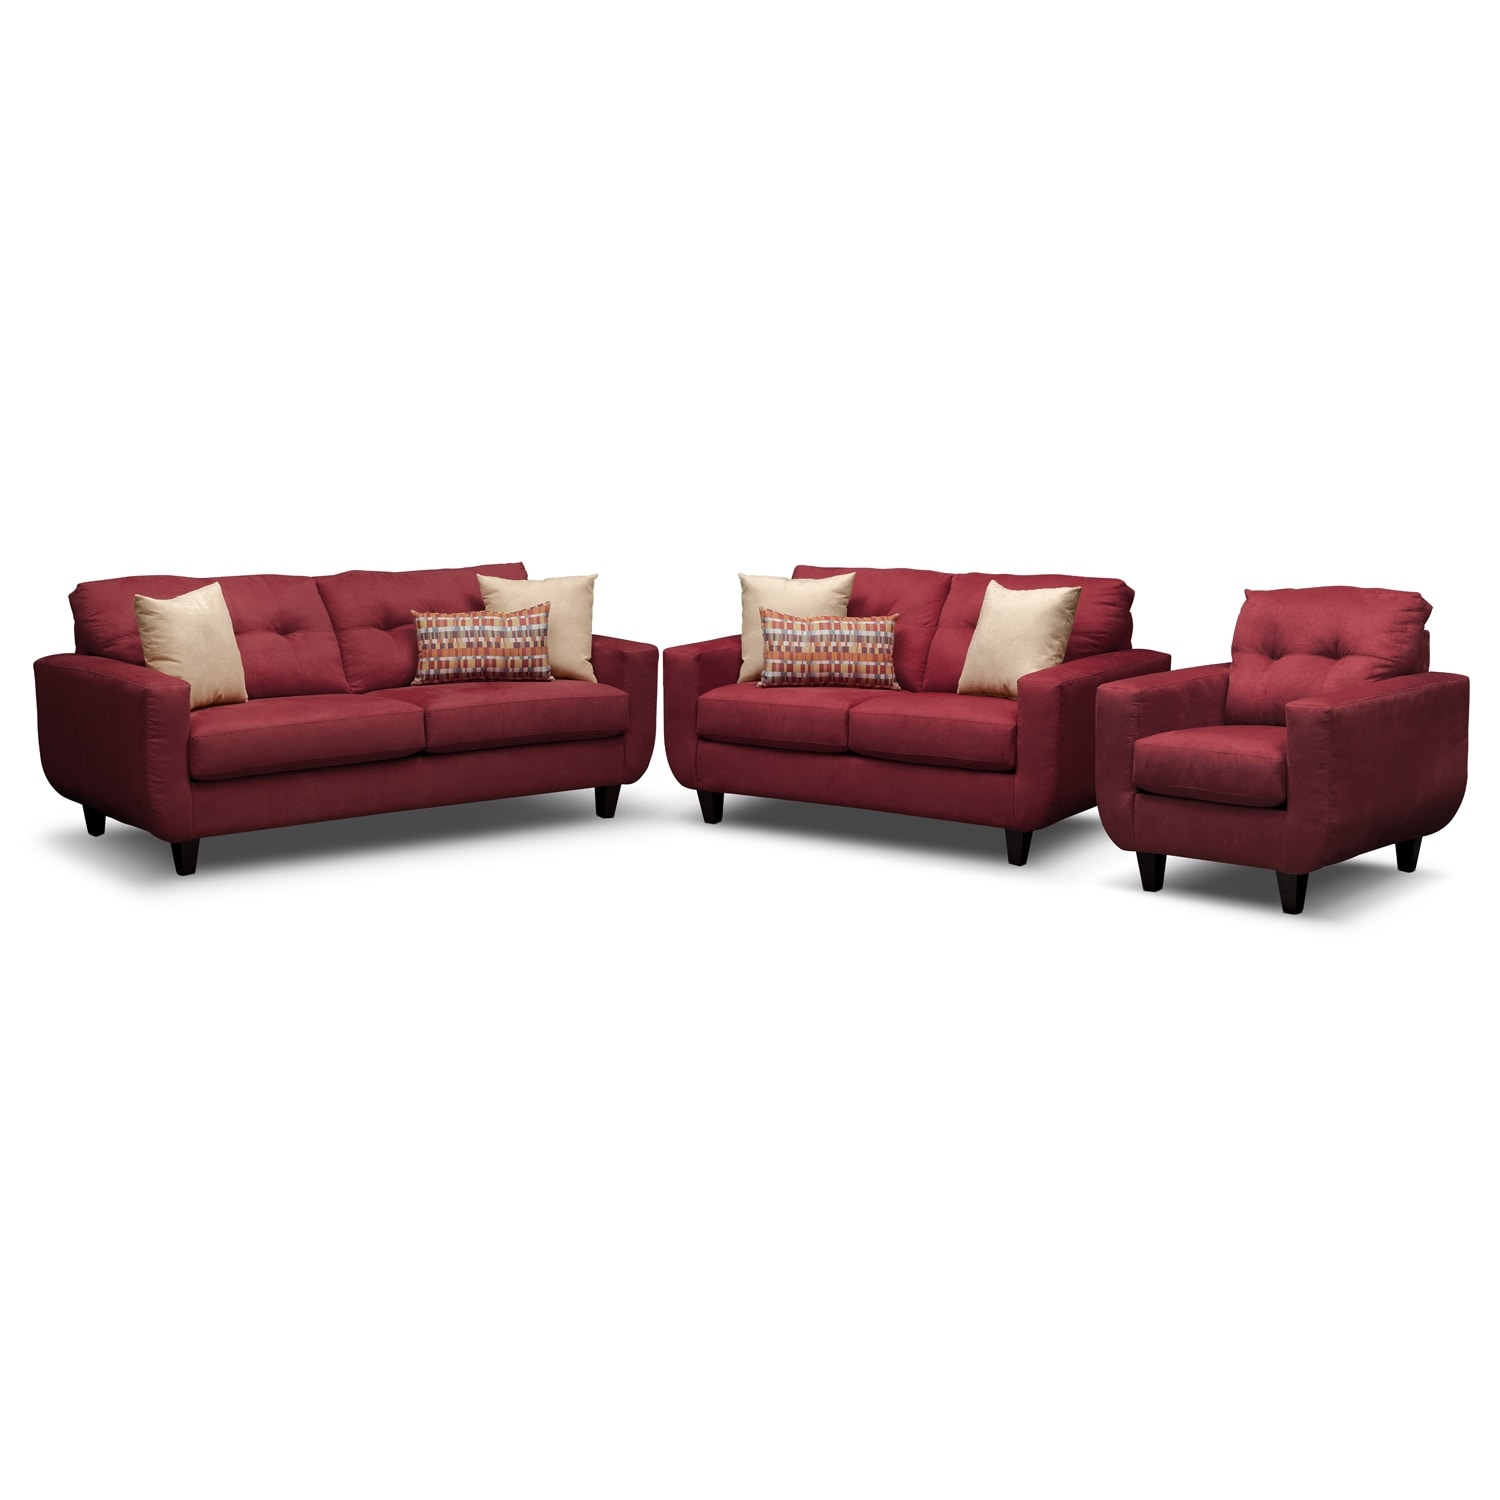 West Village Sofa, Loveseat and Chair - Red